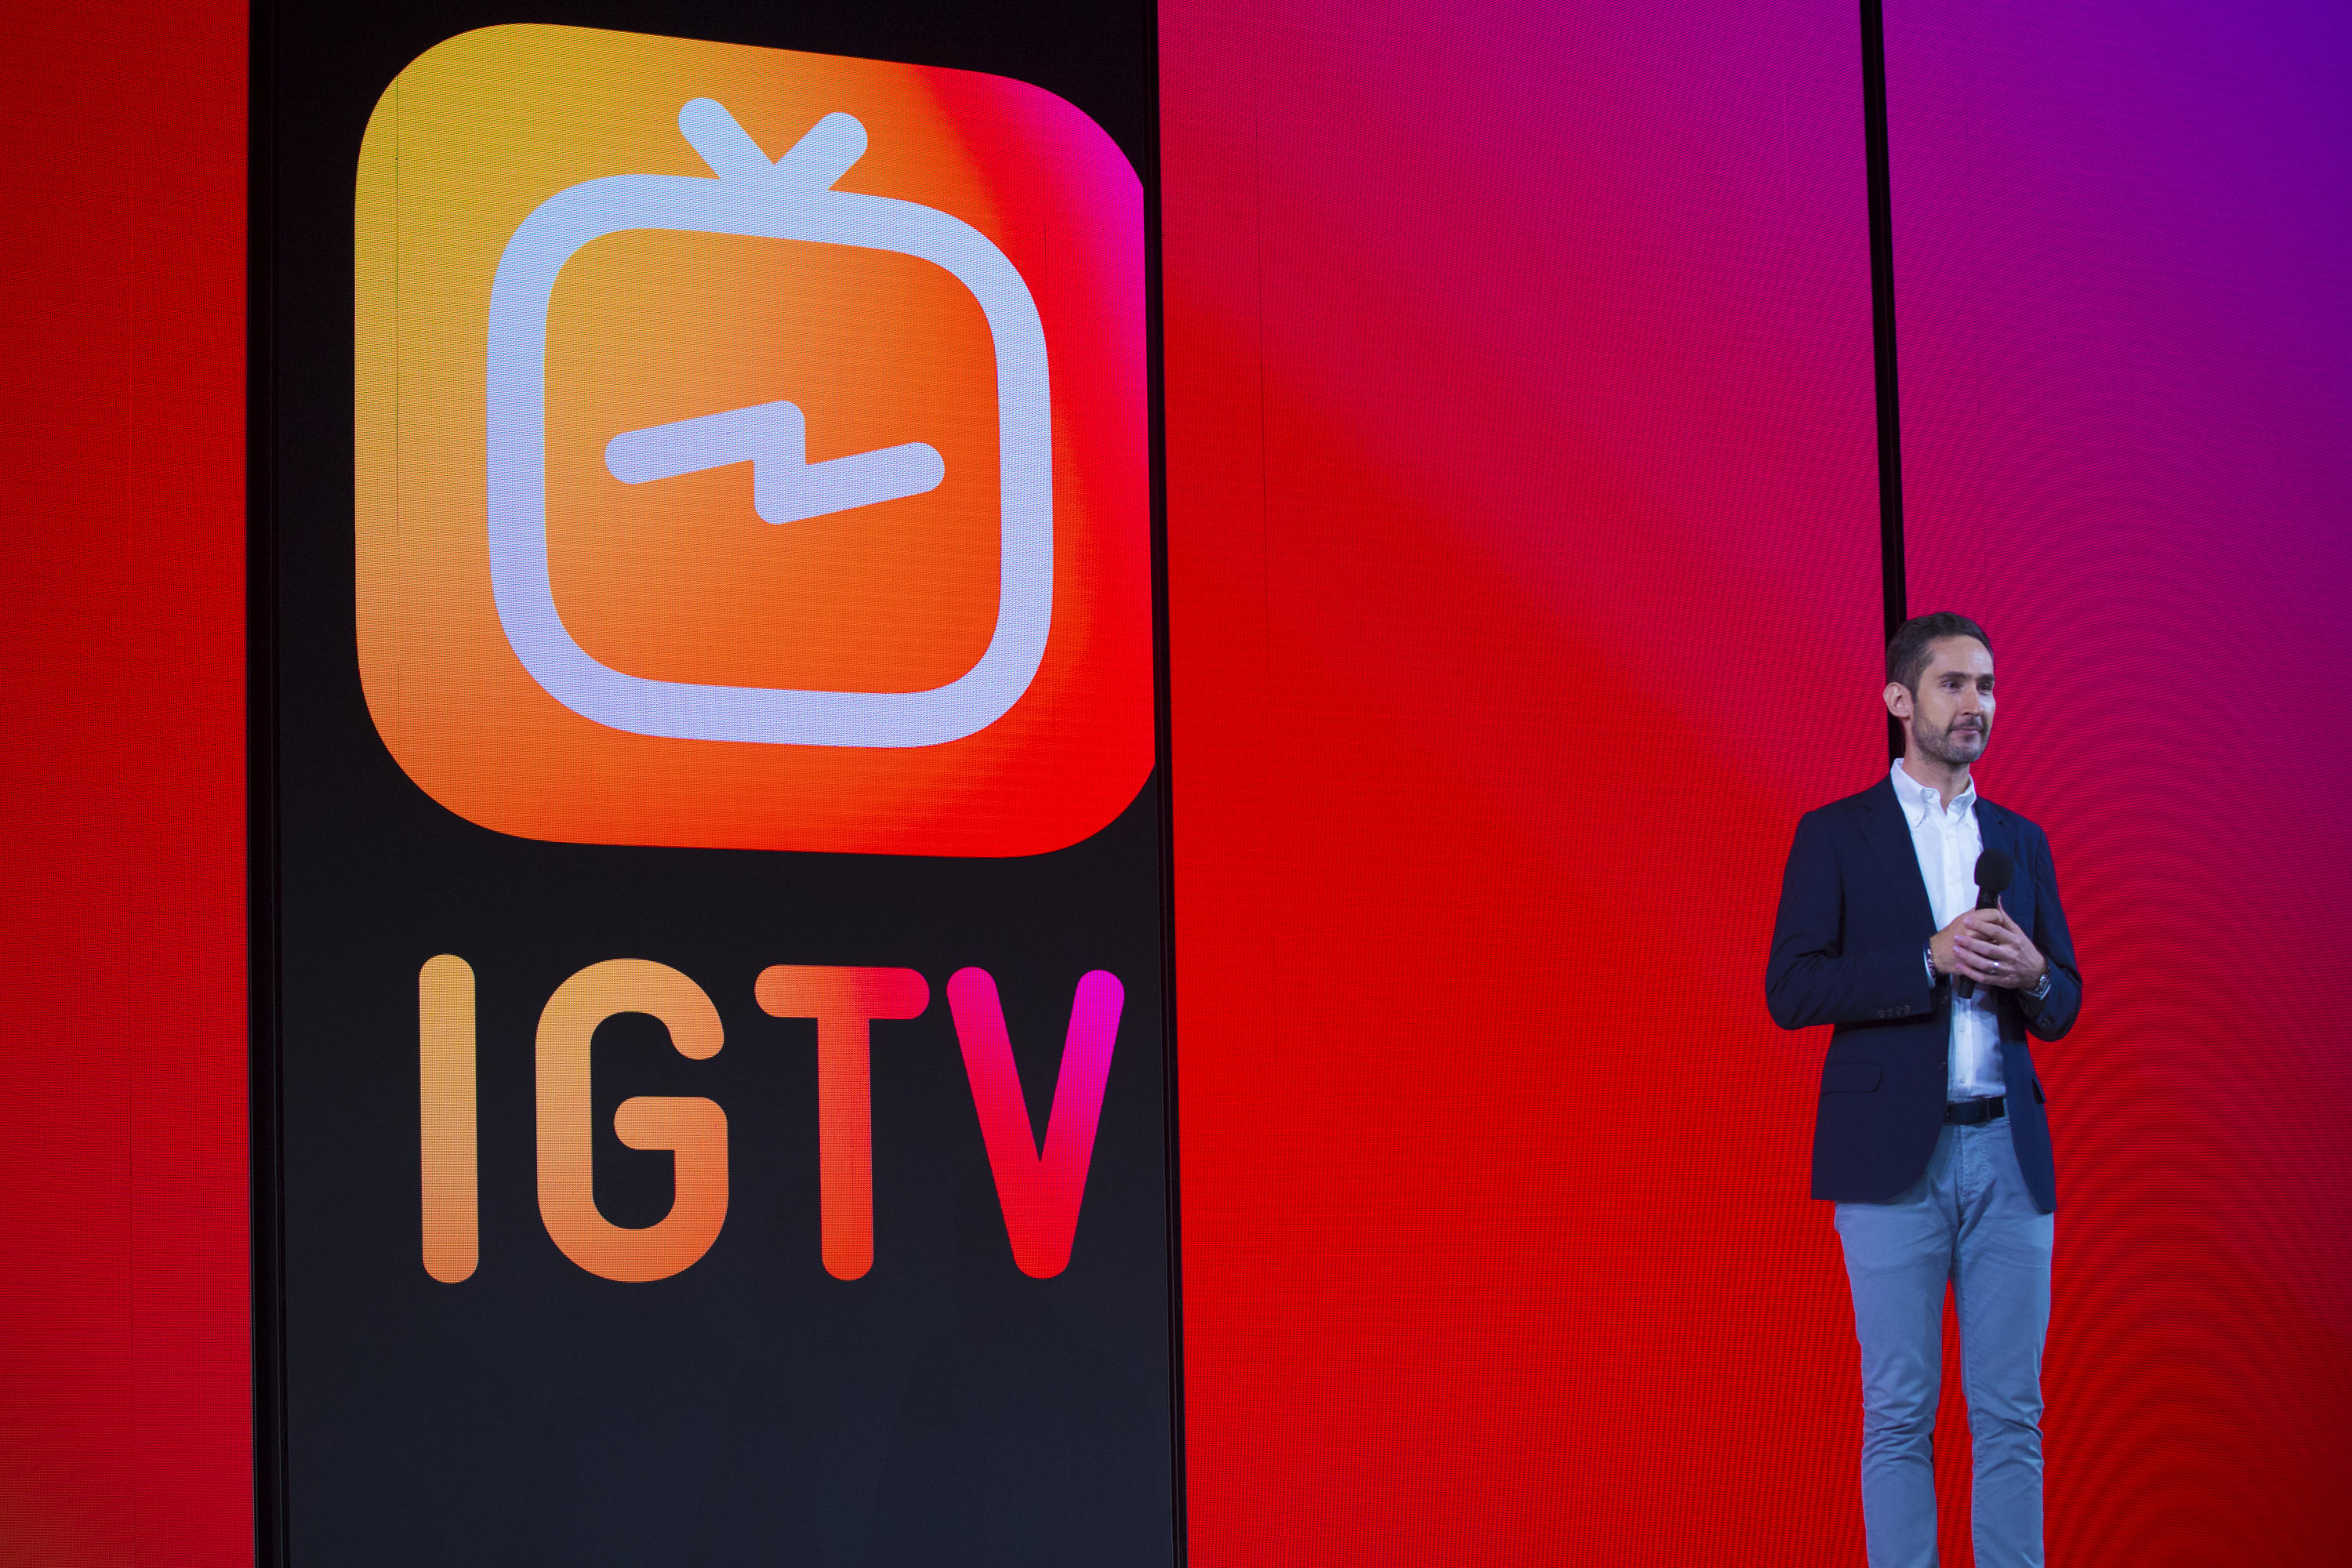 Instagram CEO Kevin Systrom announces IGTV at an event in San Francisco.